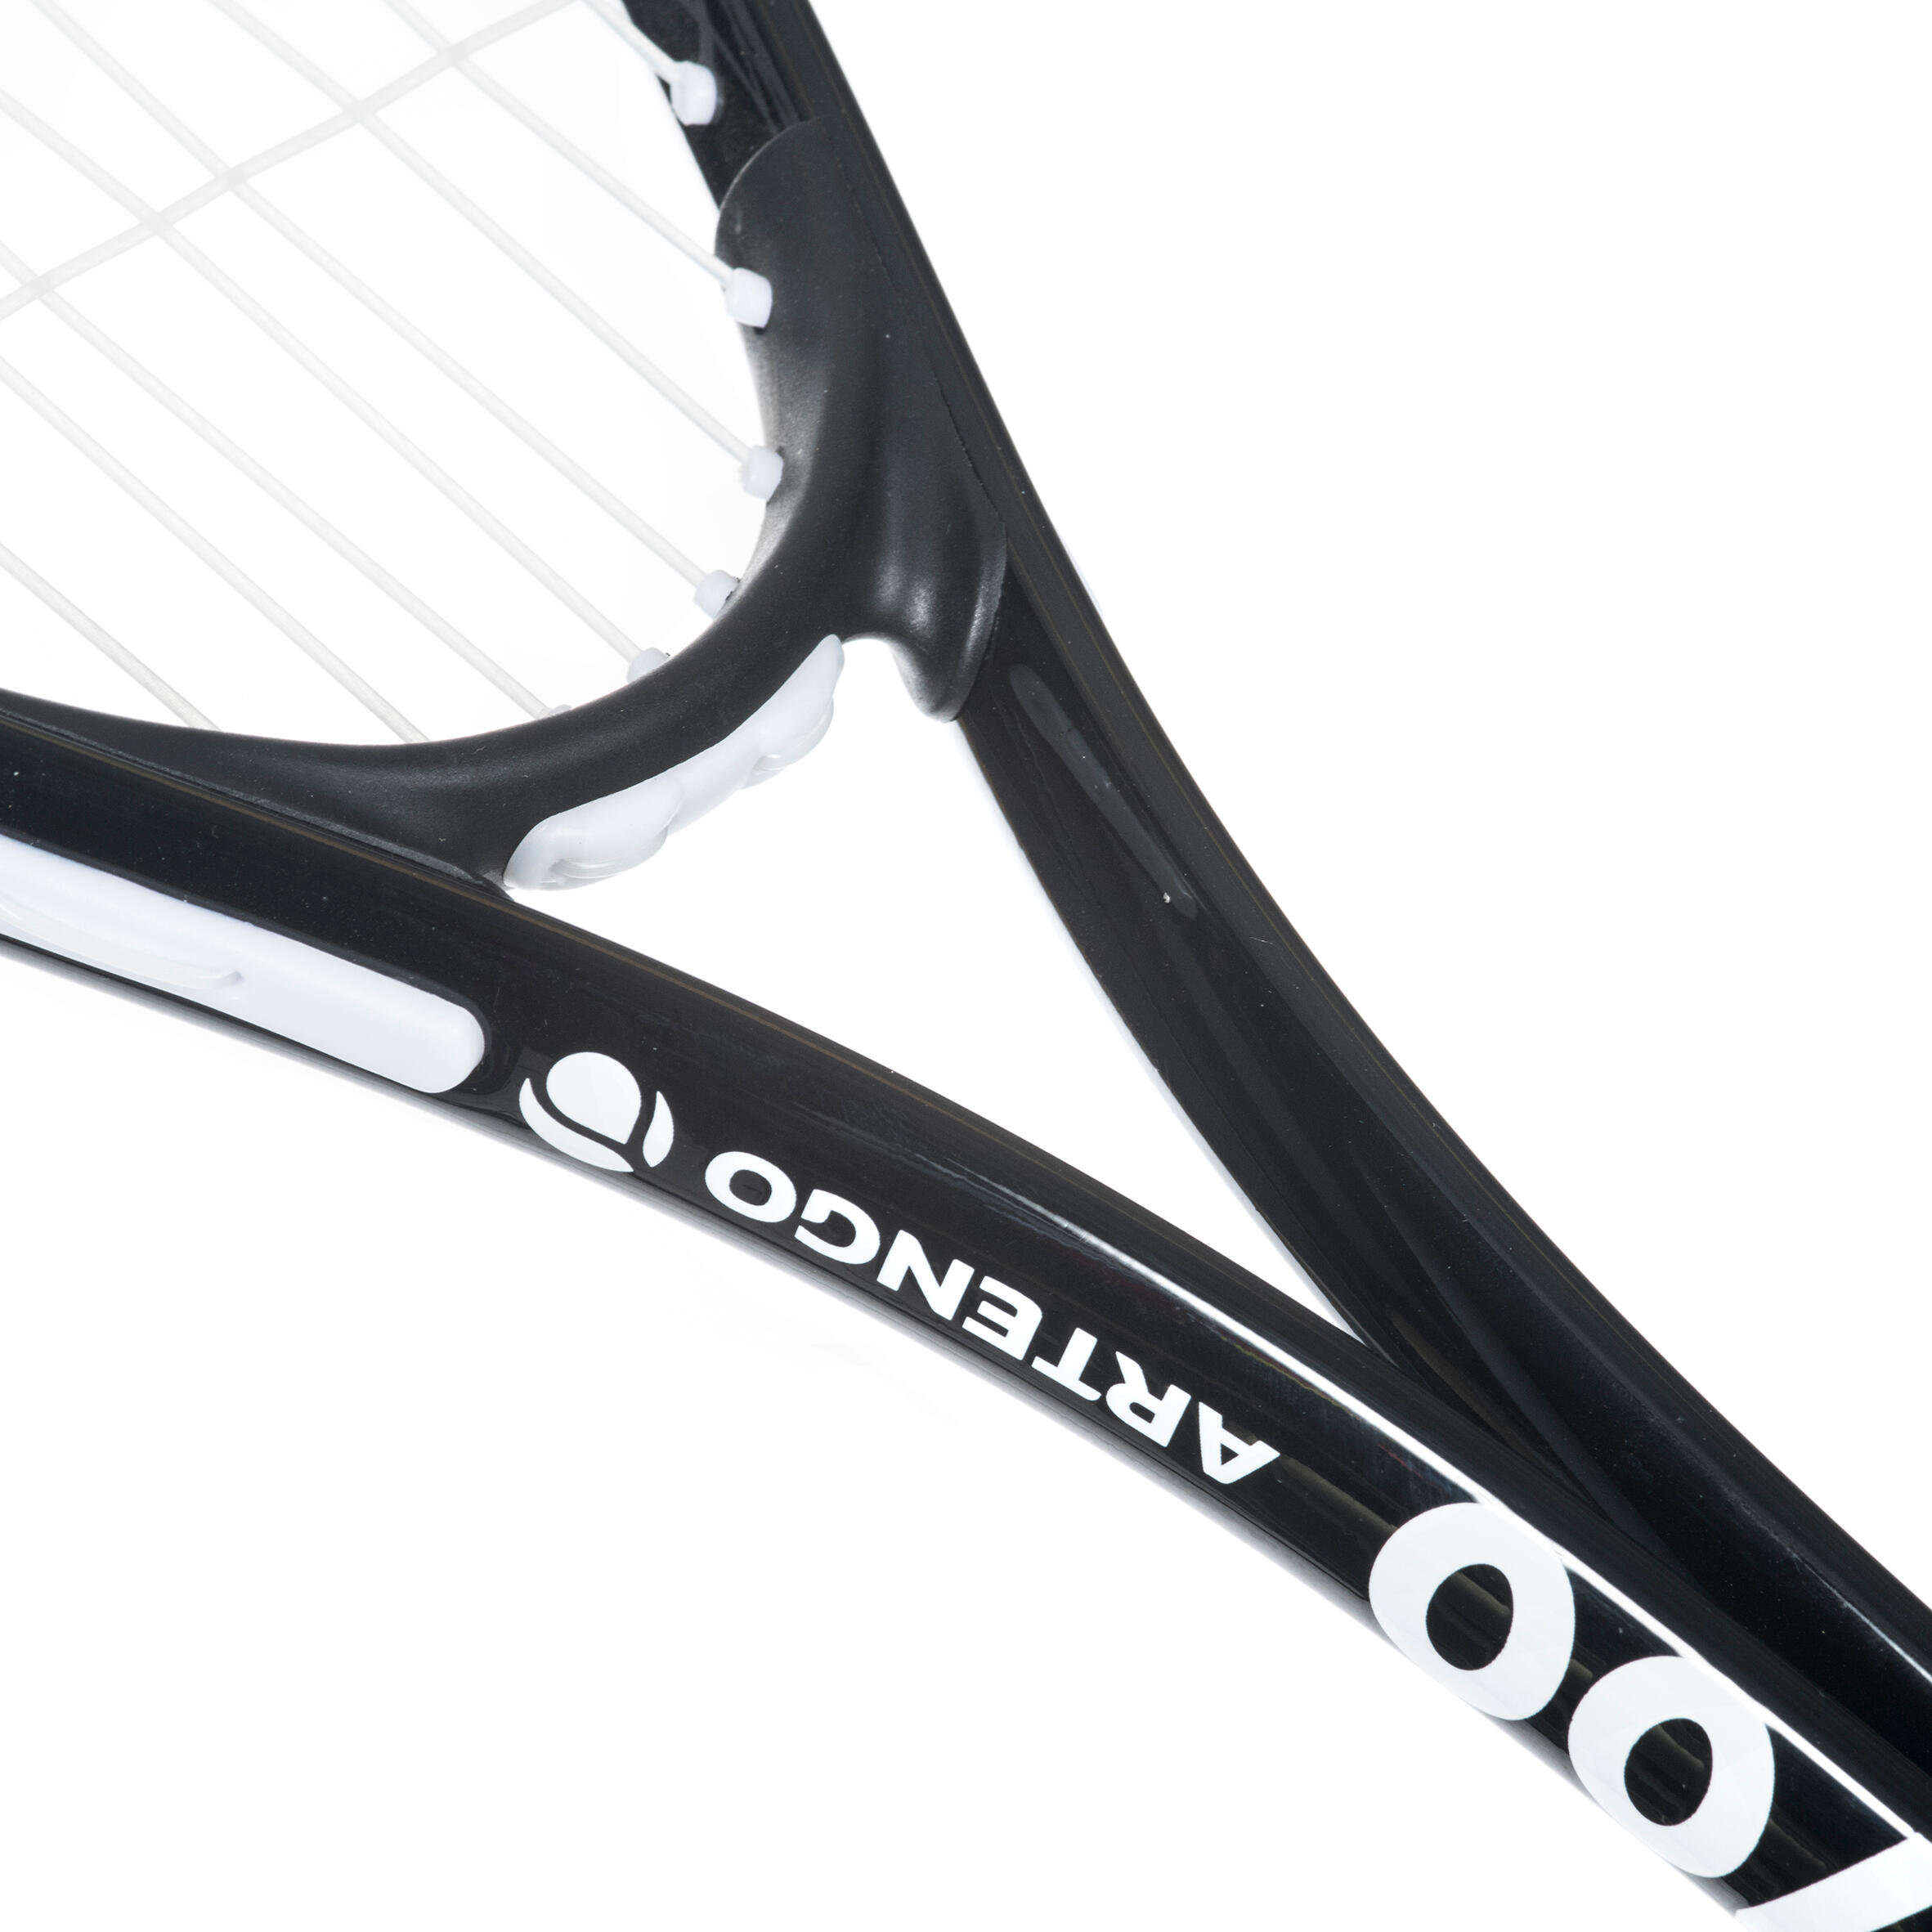 SR 100 Squash Racket - Black